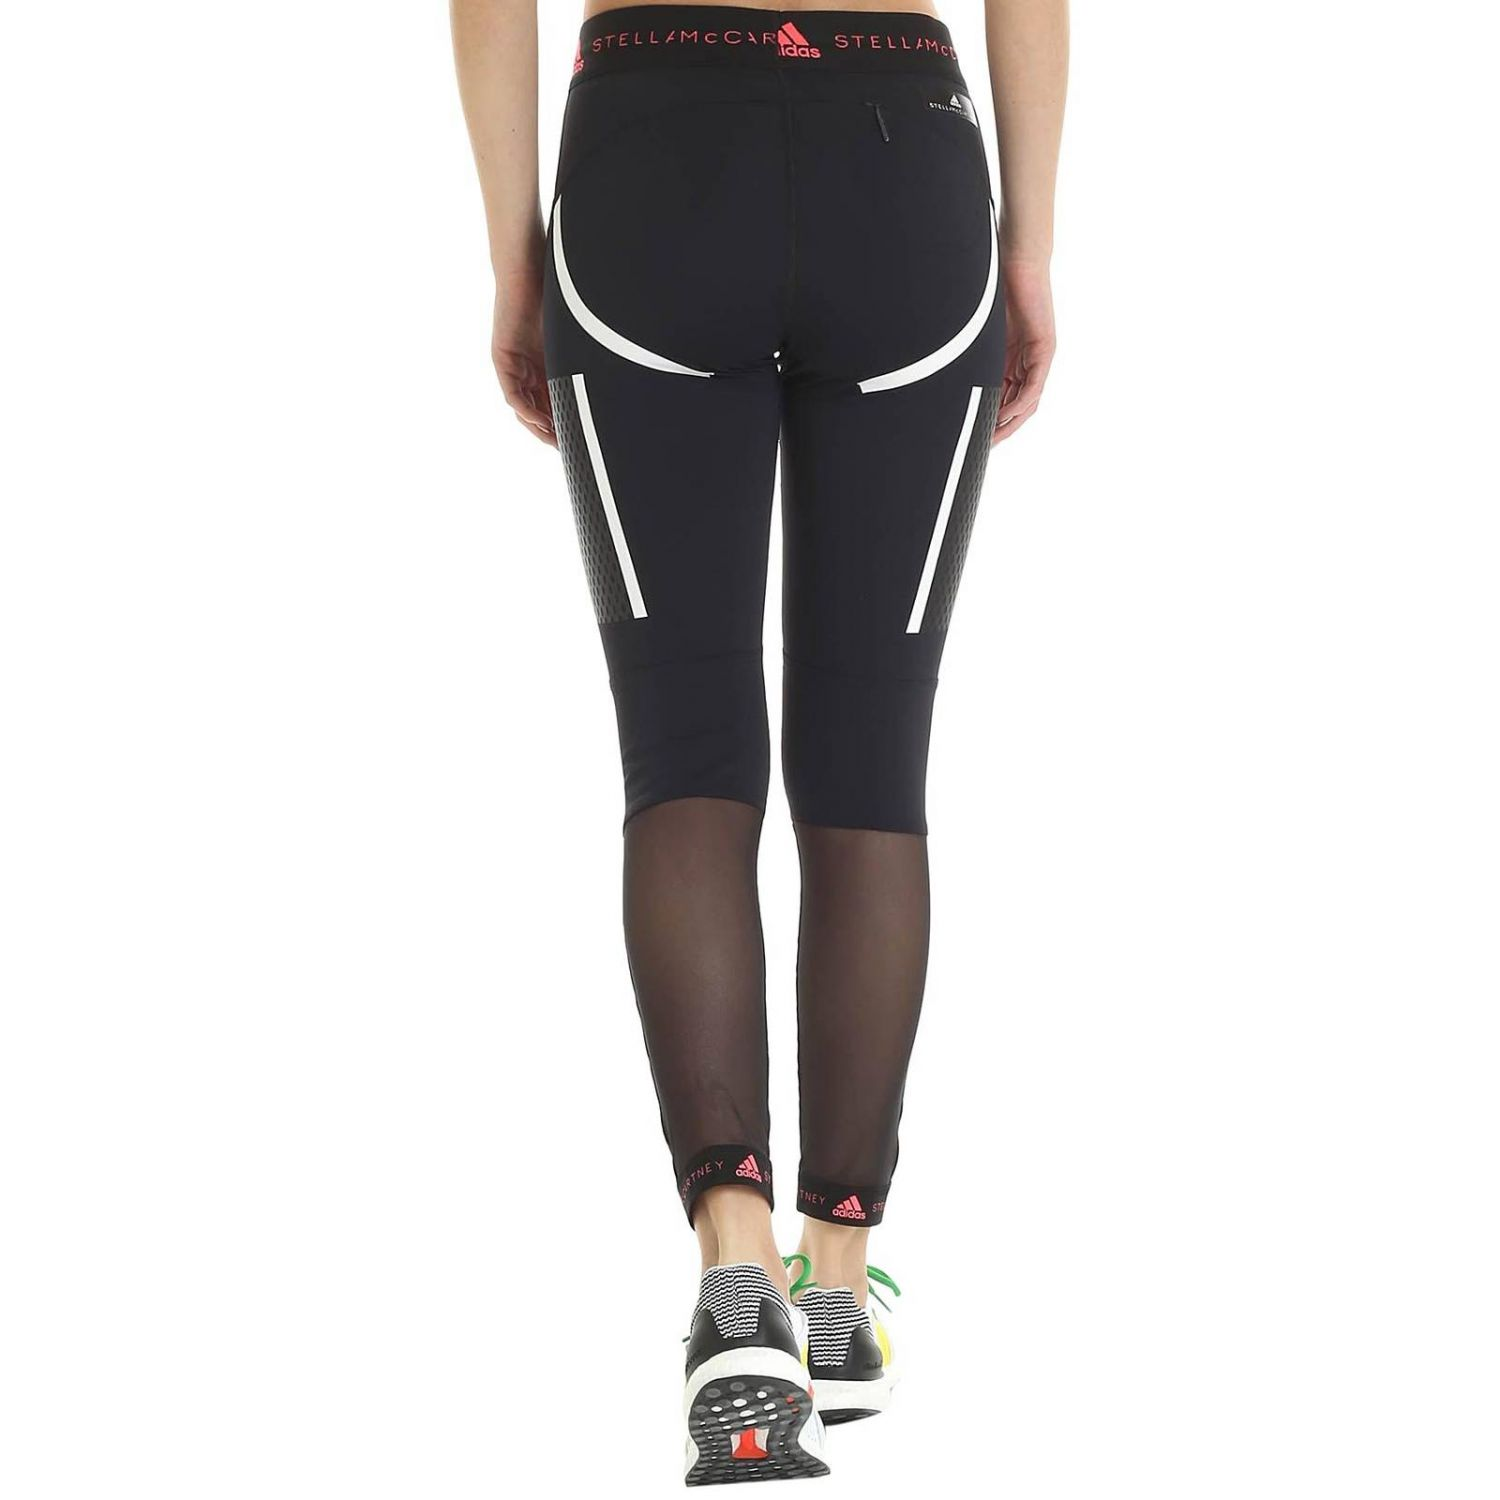 Pantalon Adidas By Stella Mccartney: Pantalon femme Adidas By Stella Mccartney noir 3